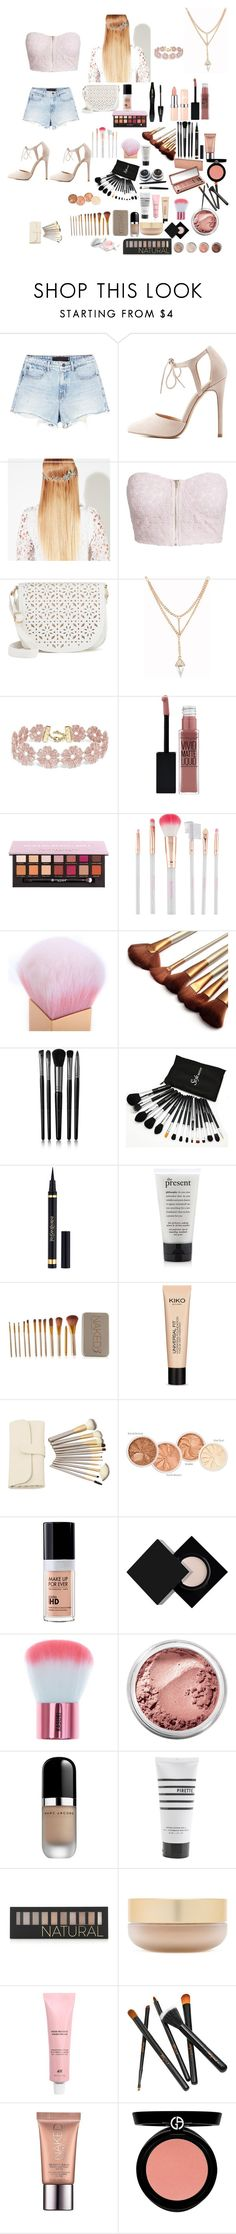 """""""Love City """" by fashion-dora15 ❤ liked on Polyvore featuring Alexander Wang, Charlotte Russe, John Lewis, NLY Trend, Under One Sky, BaubleBar, Maybelline, Lancôme, Anastasia Beverly Hills and Accessorize"""